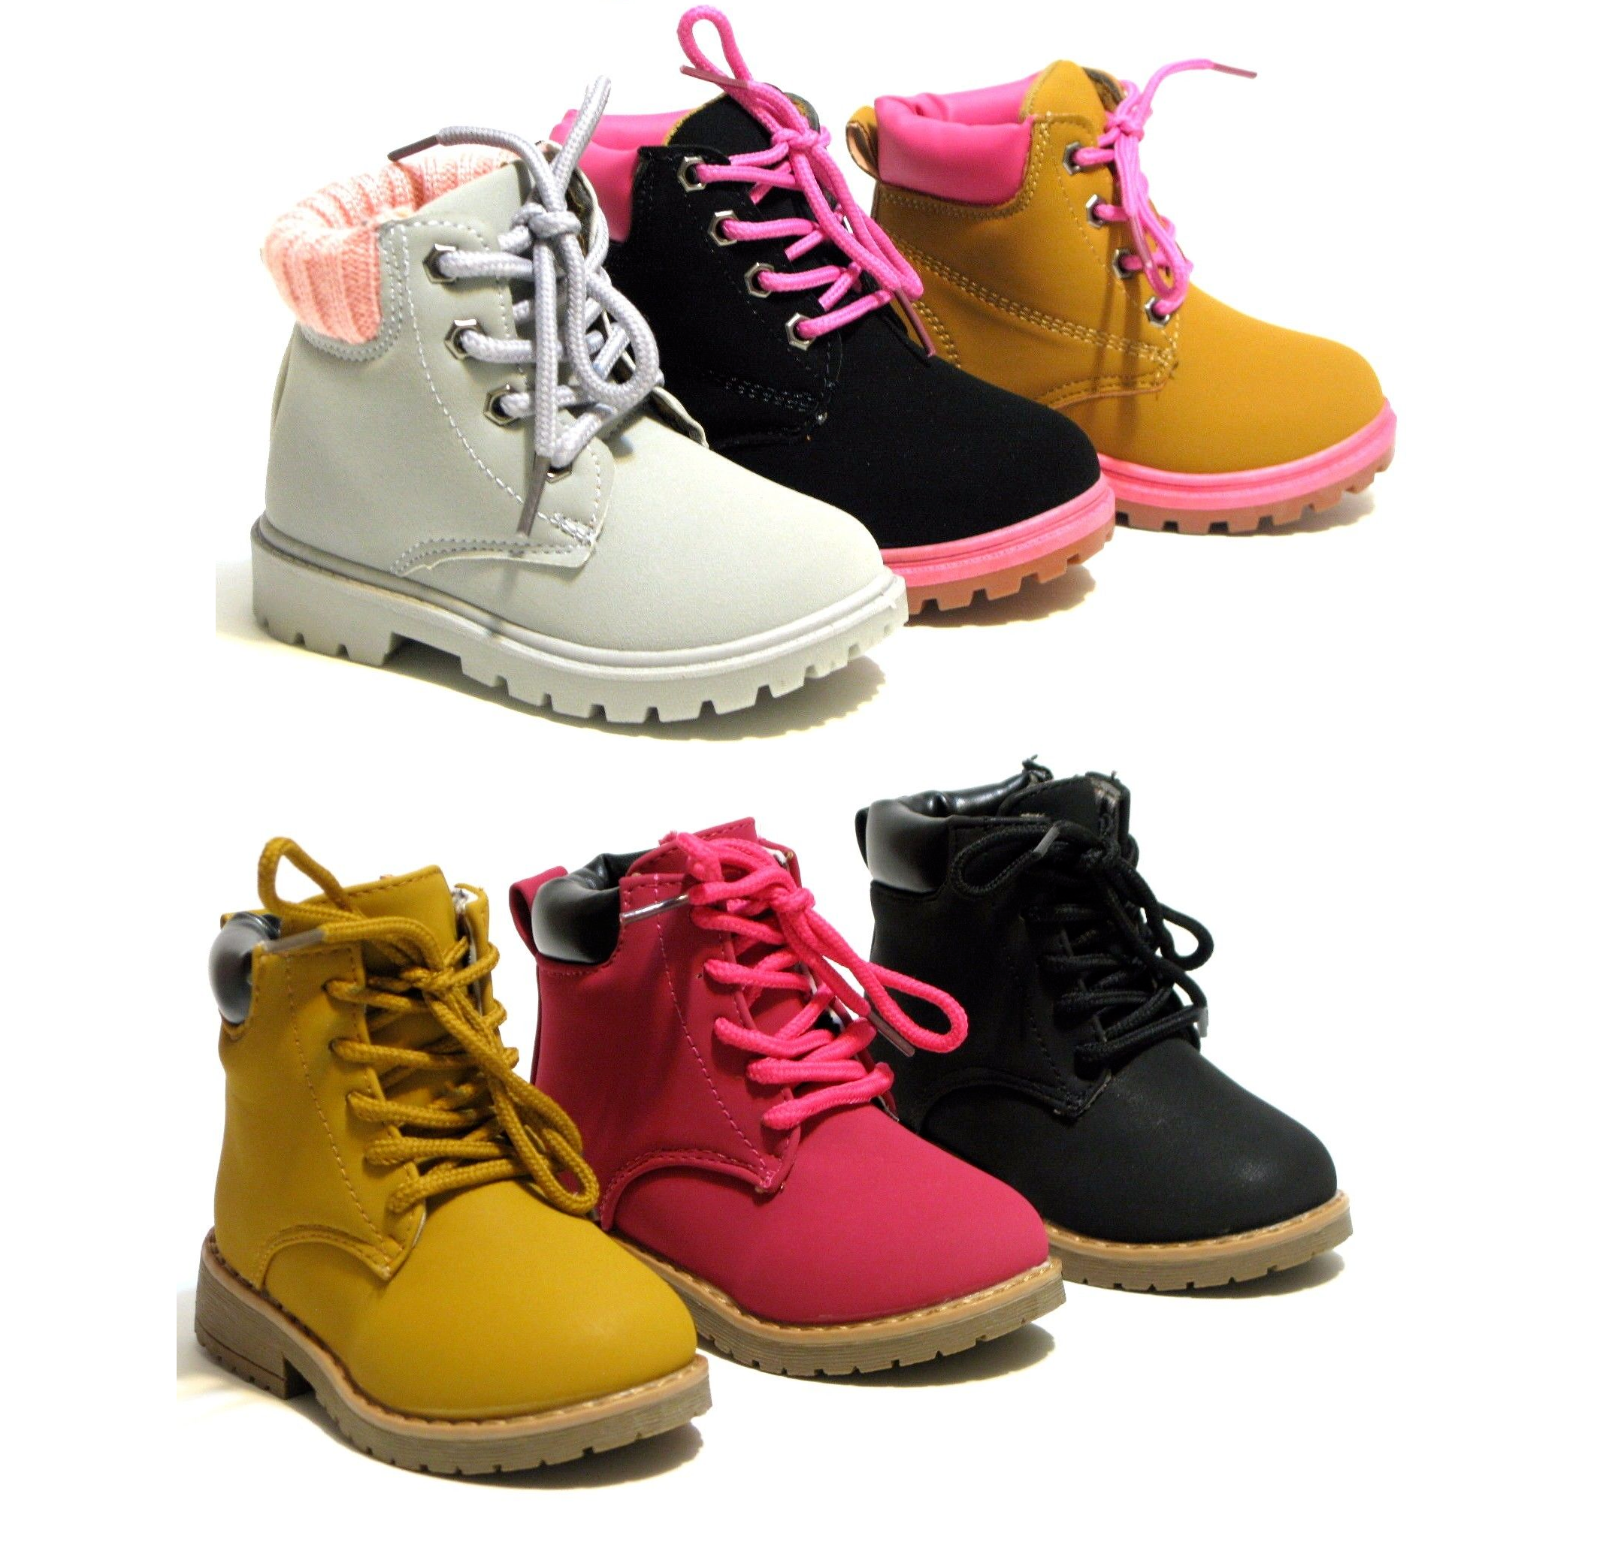 New Baby Toddler Girls Lace Up Ankle Boots Casual Shoes 3 Co